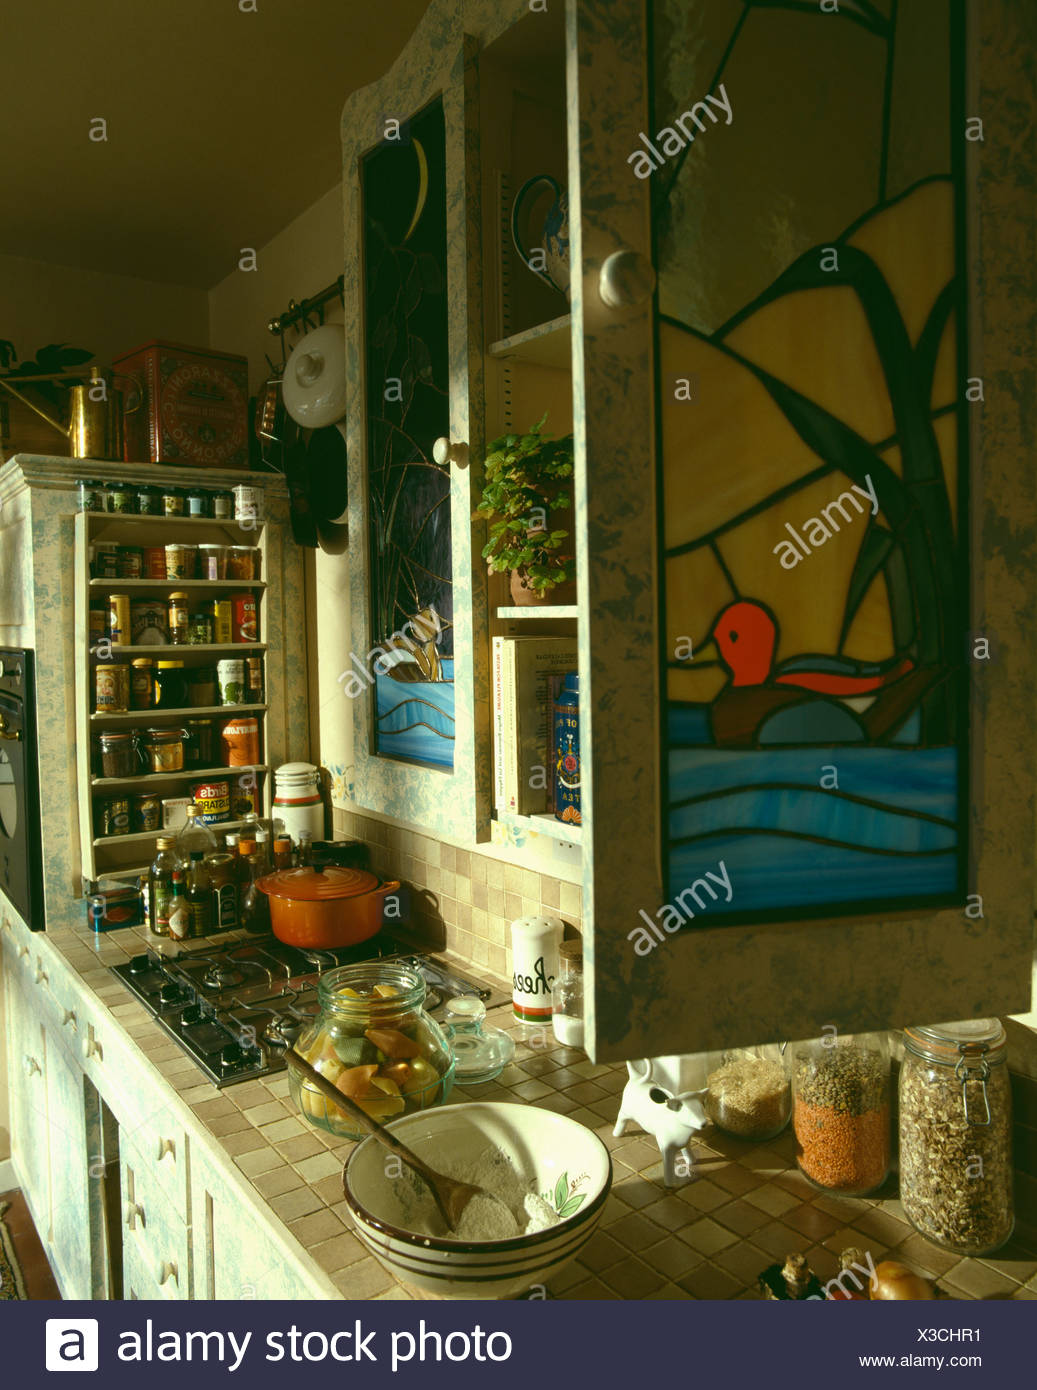 Close Up Of Stained Glass Cupboard Door Above Worktop With Food Preparation In Eighties Kitchen Stock Photo Alamy